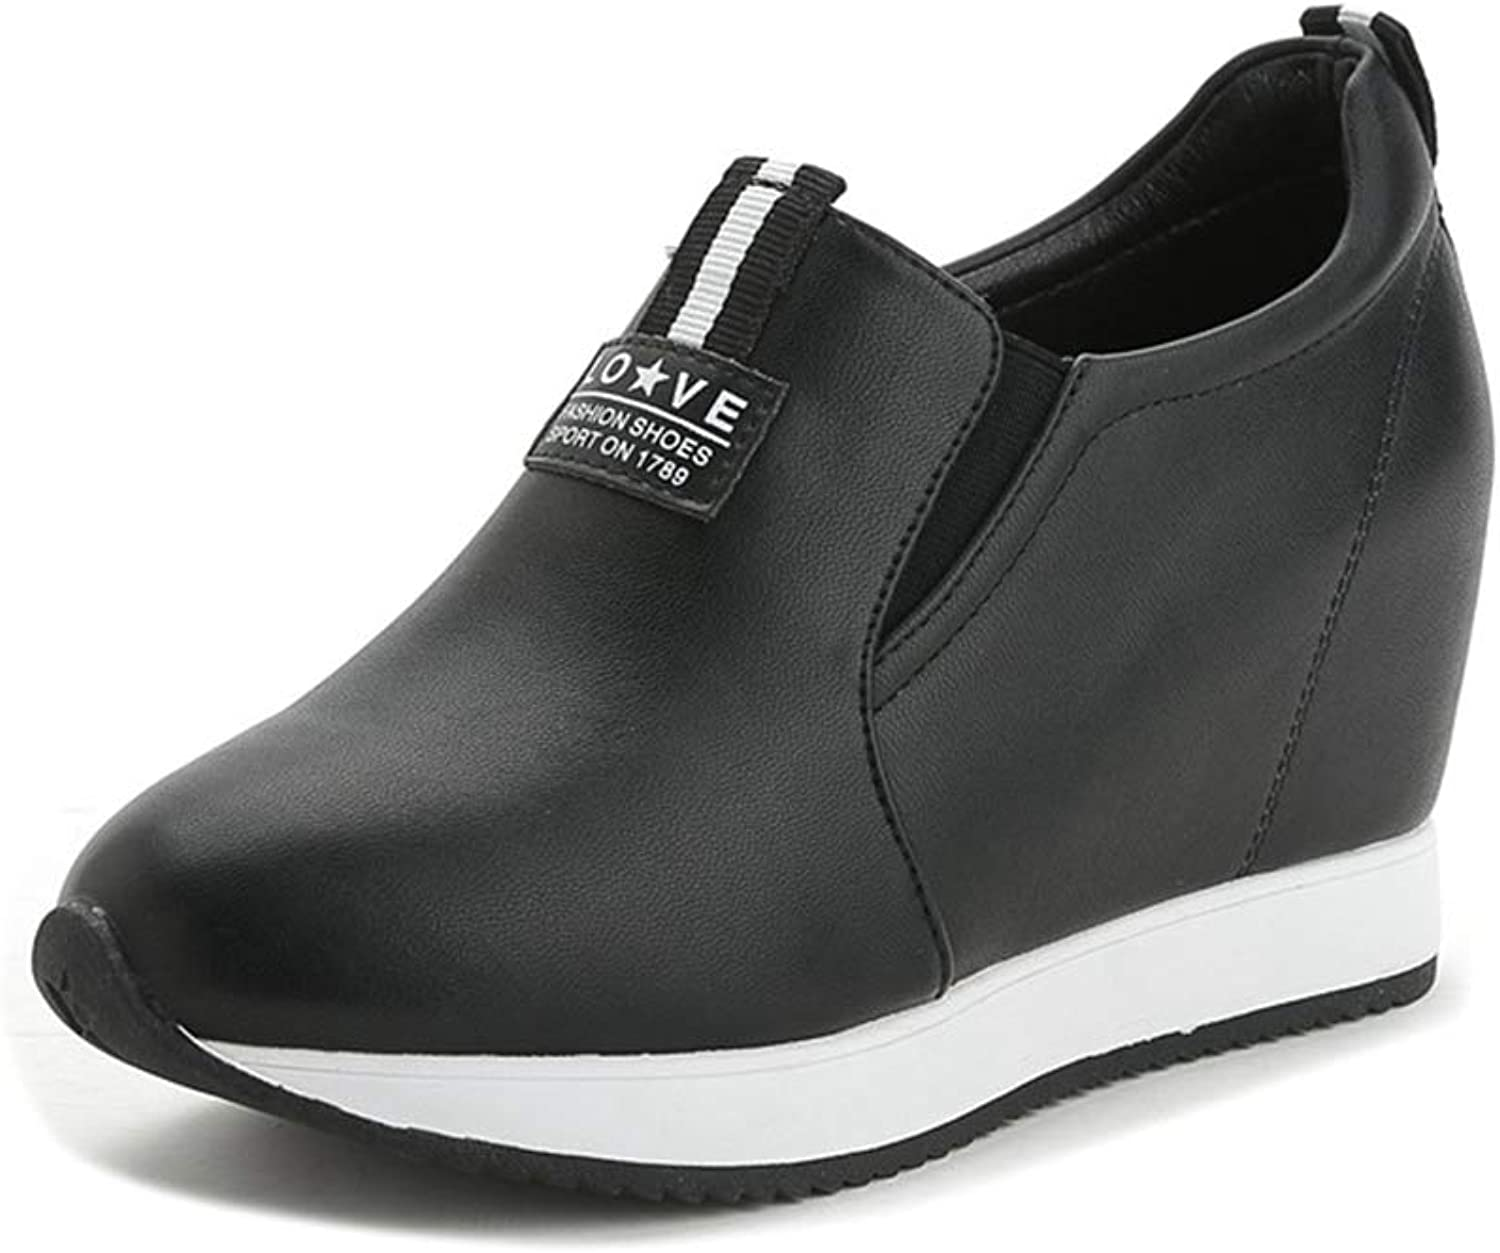 ASO-SLING Hidden Heels Wedges Sneakers for Womens Fashion Loafers Casual Height Increasing Walking shoes